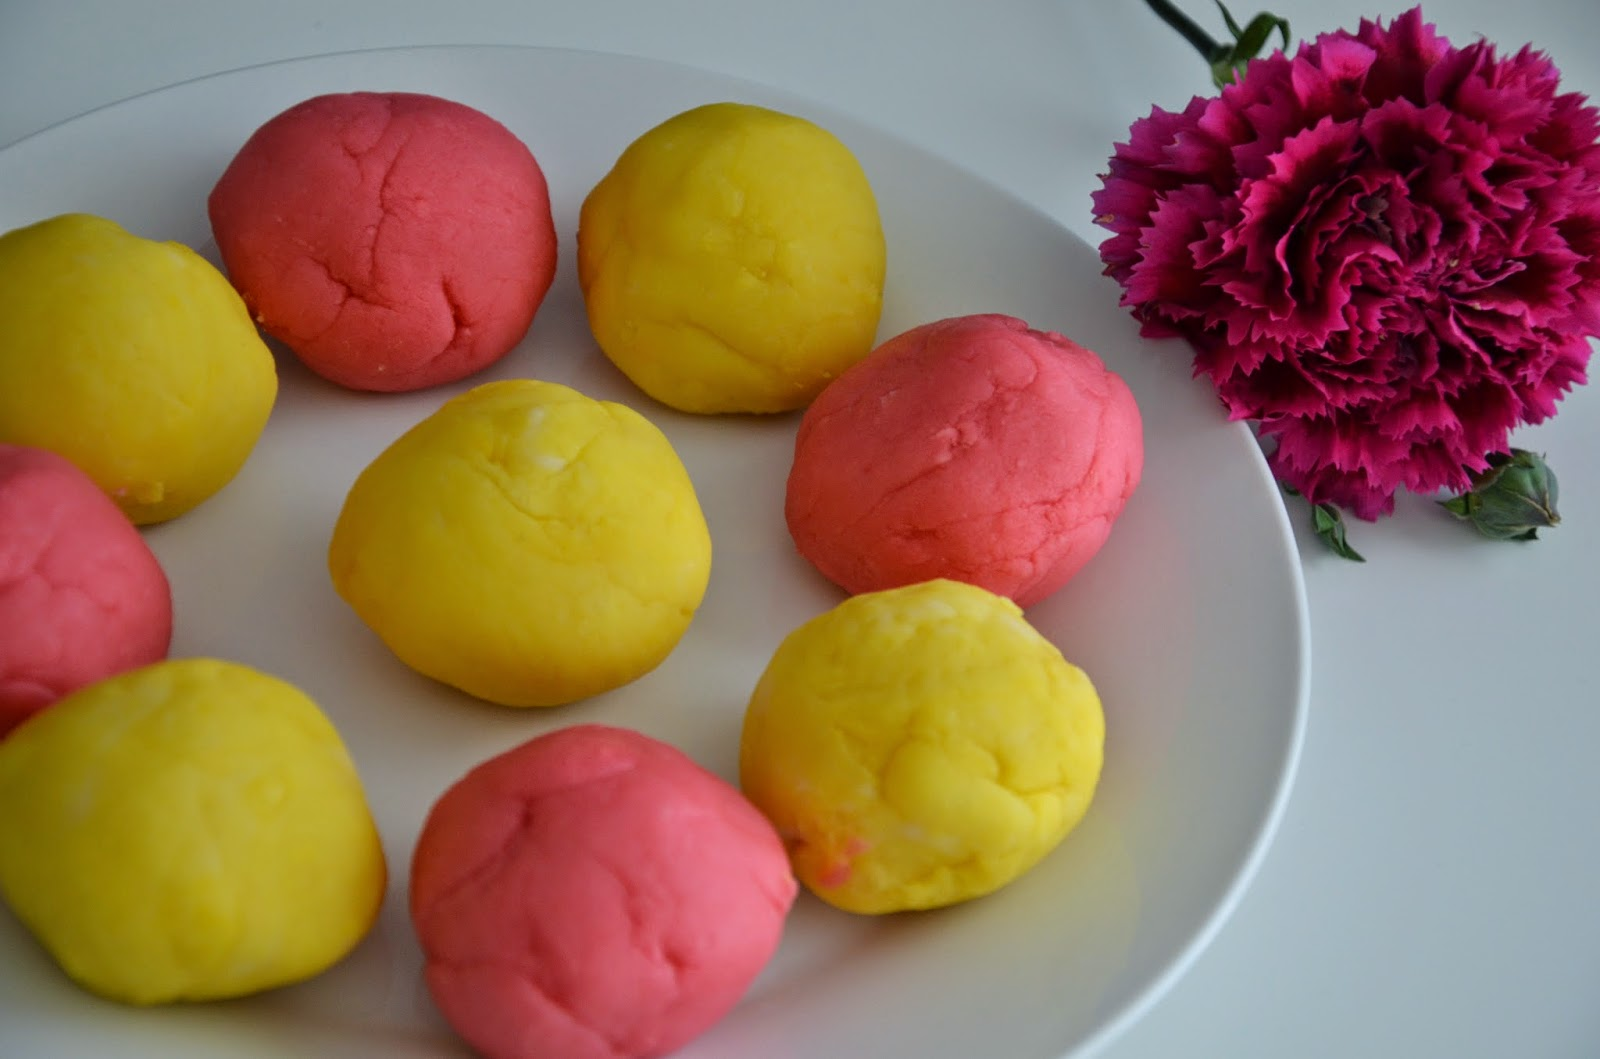 homemade playdough recipe using cream of tartar